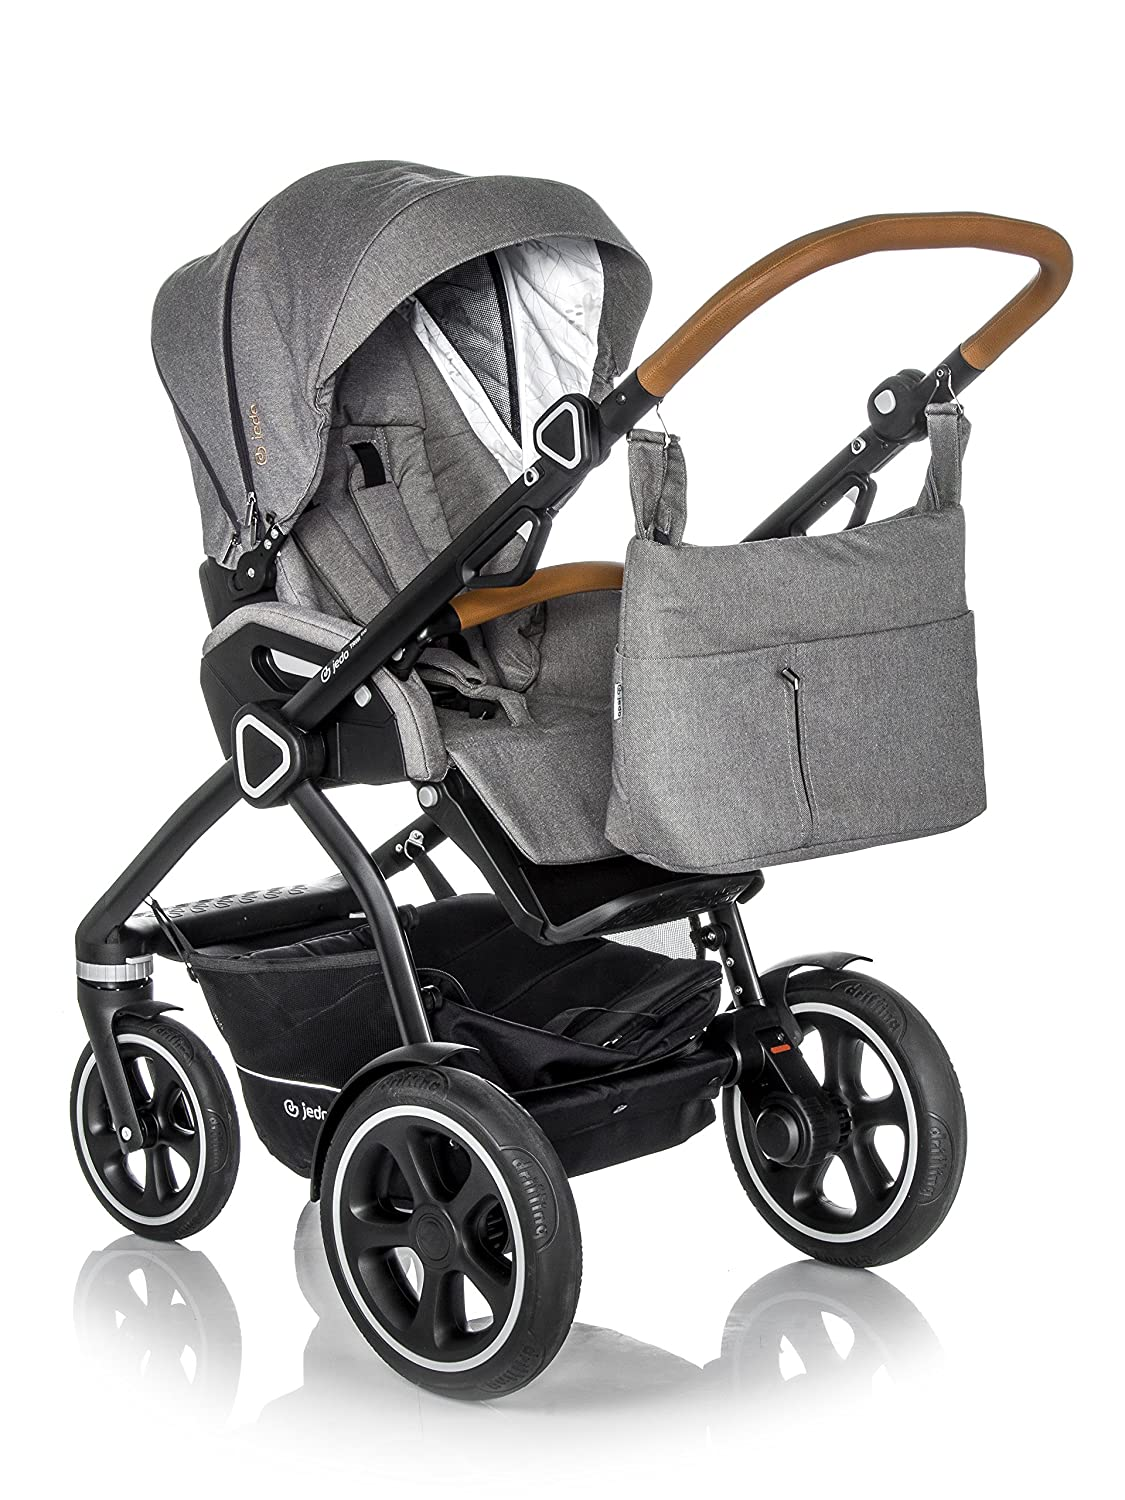 Baby stroller Jedo: photo and review of models, reviews 56